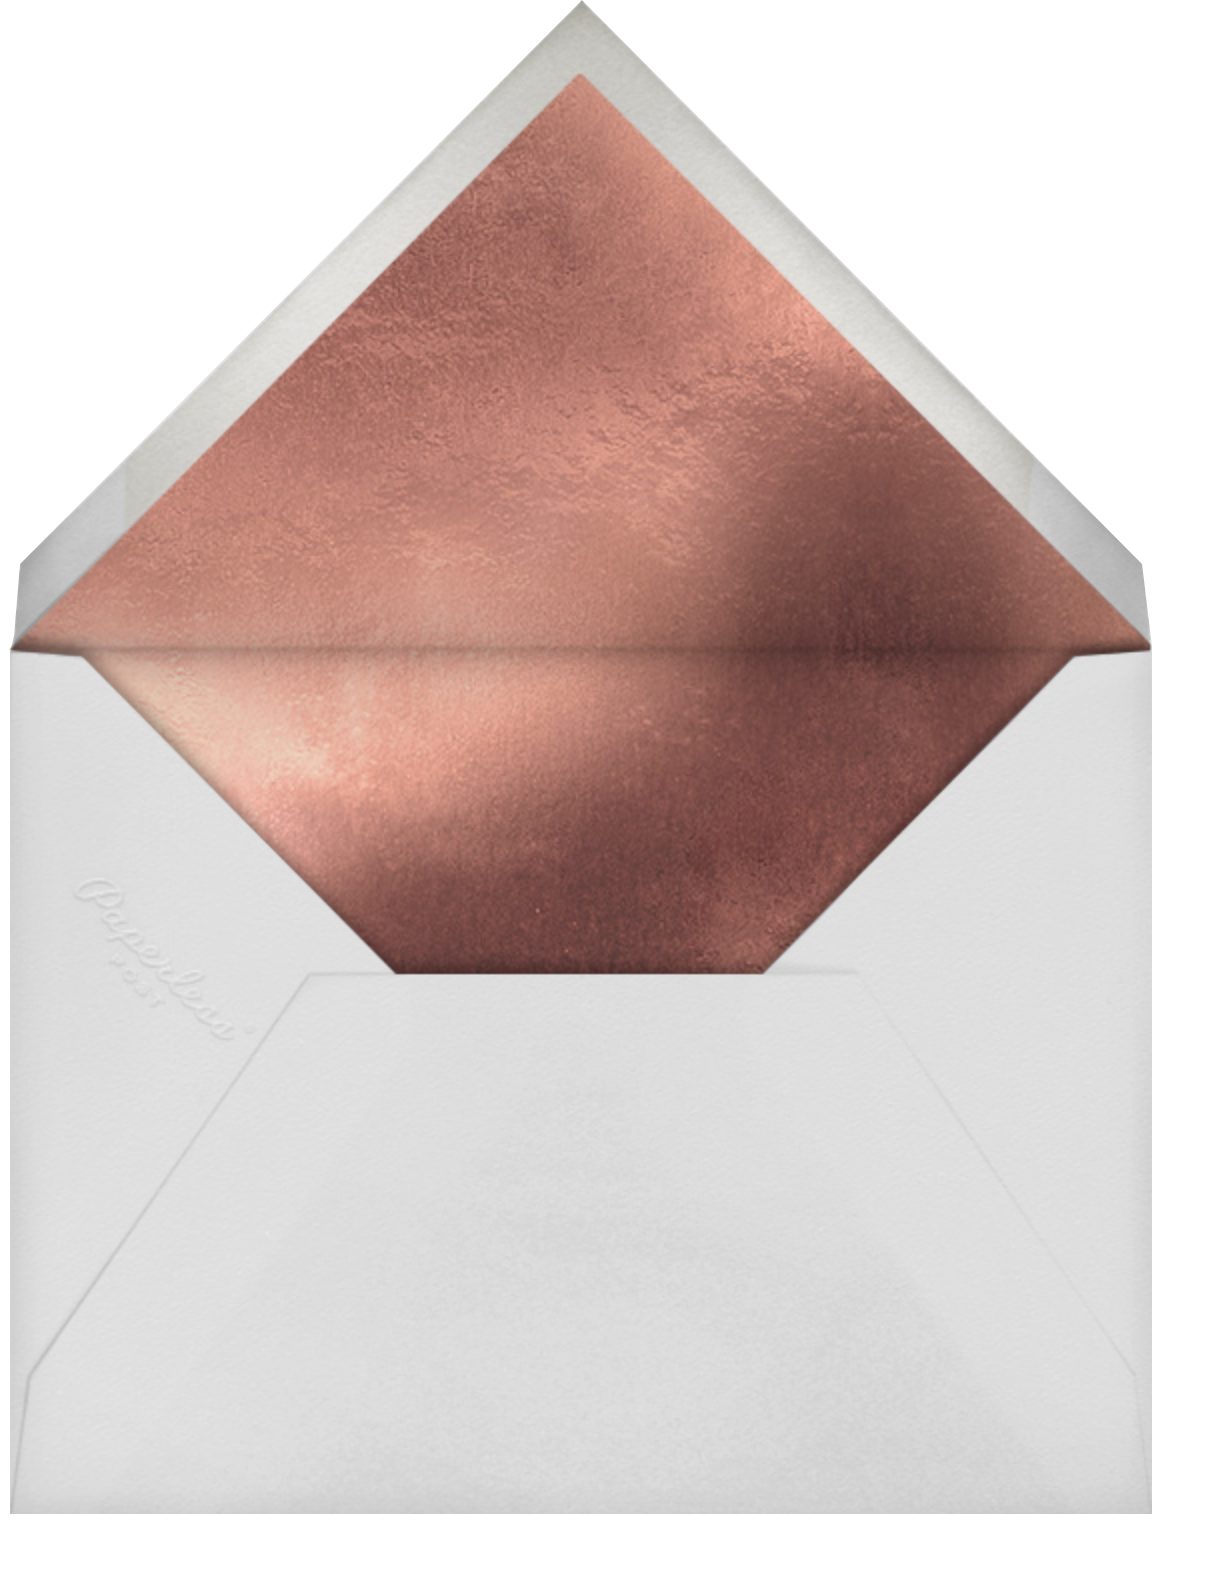 Belle Boulevard (Photo Save the Date) - Rose Gold - kate spade new york - Photo  - envelope back